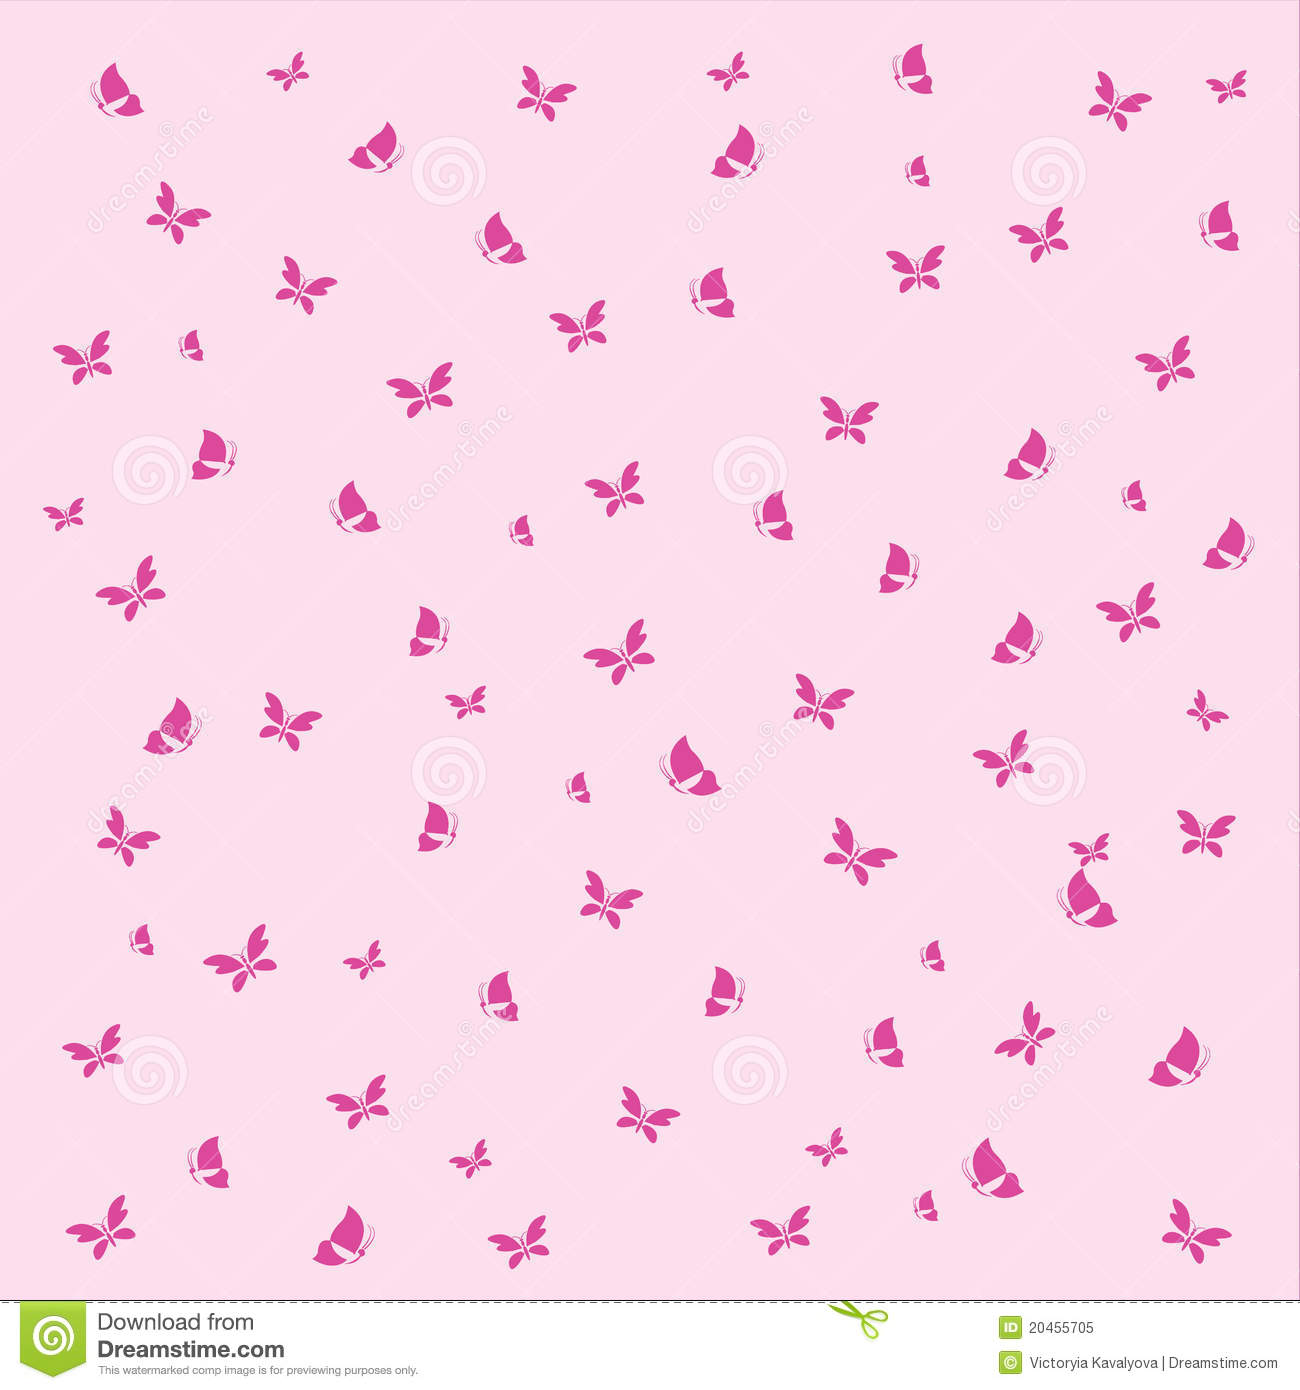 Pink vintage butterfly background - photo#22